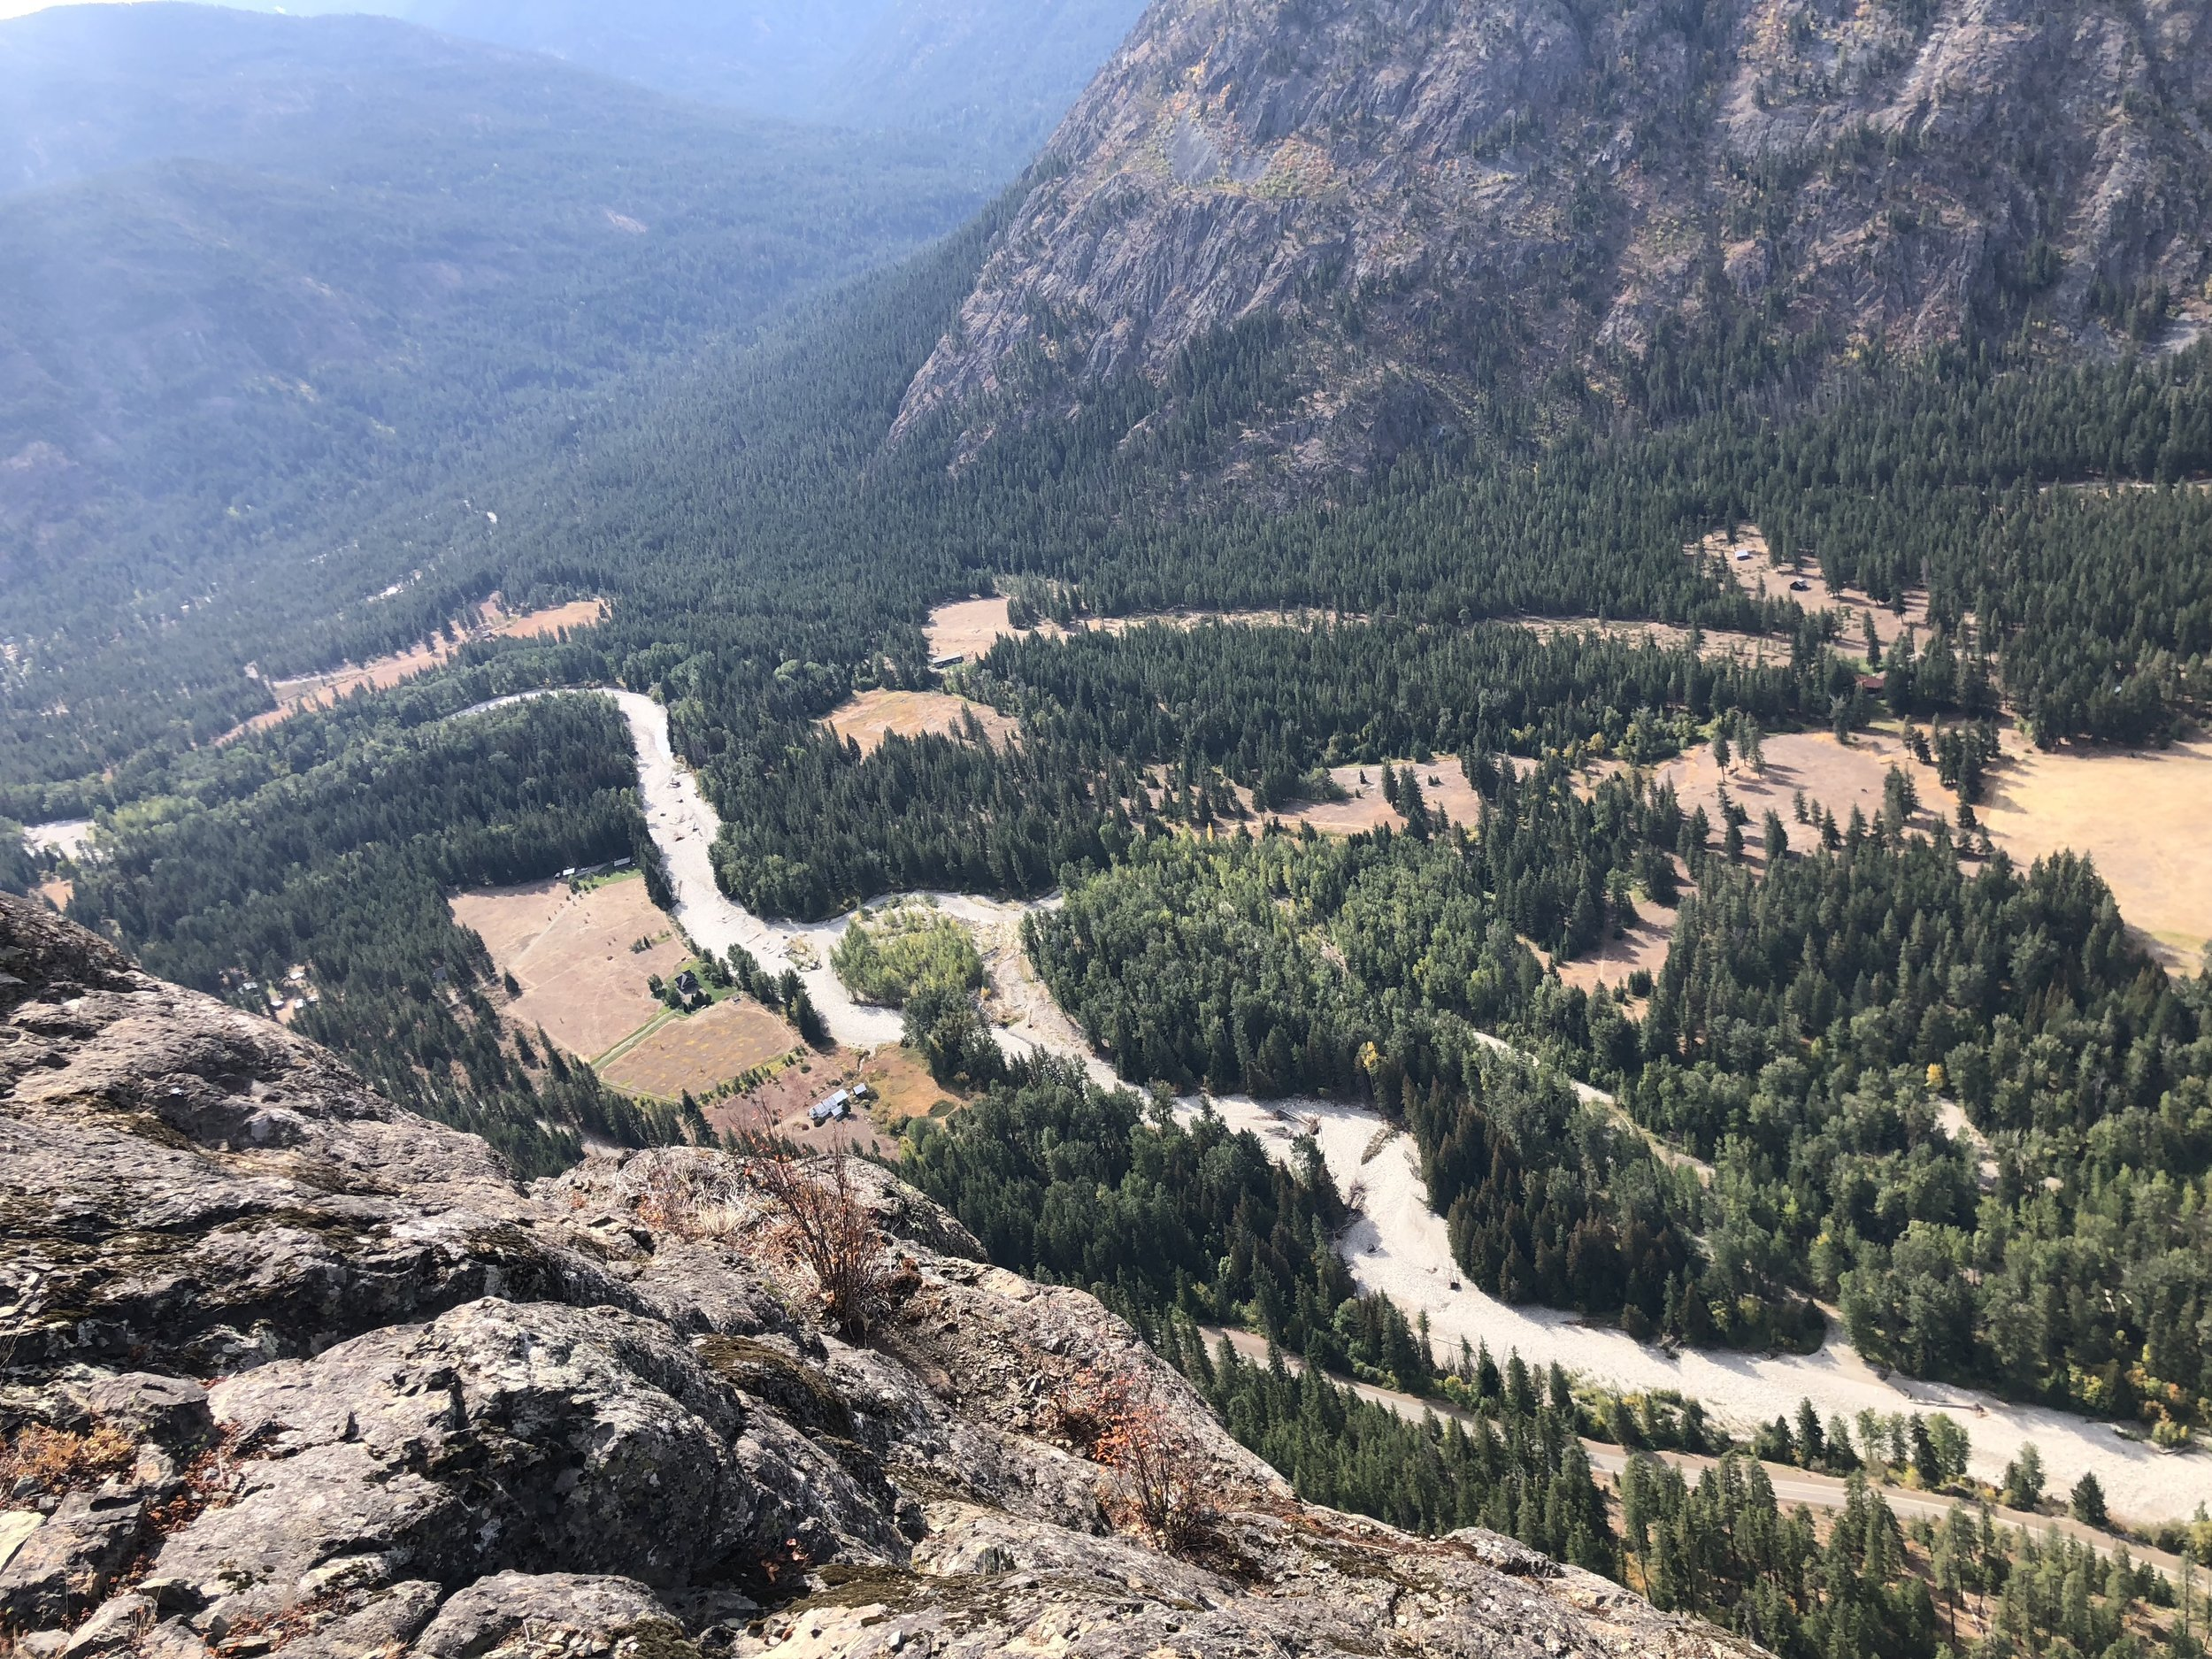 The view looking down at the valley floor as trees and cars get smaller and smaller.